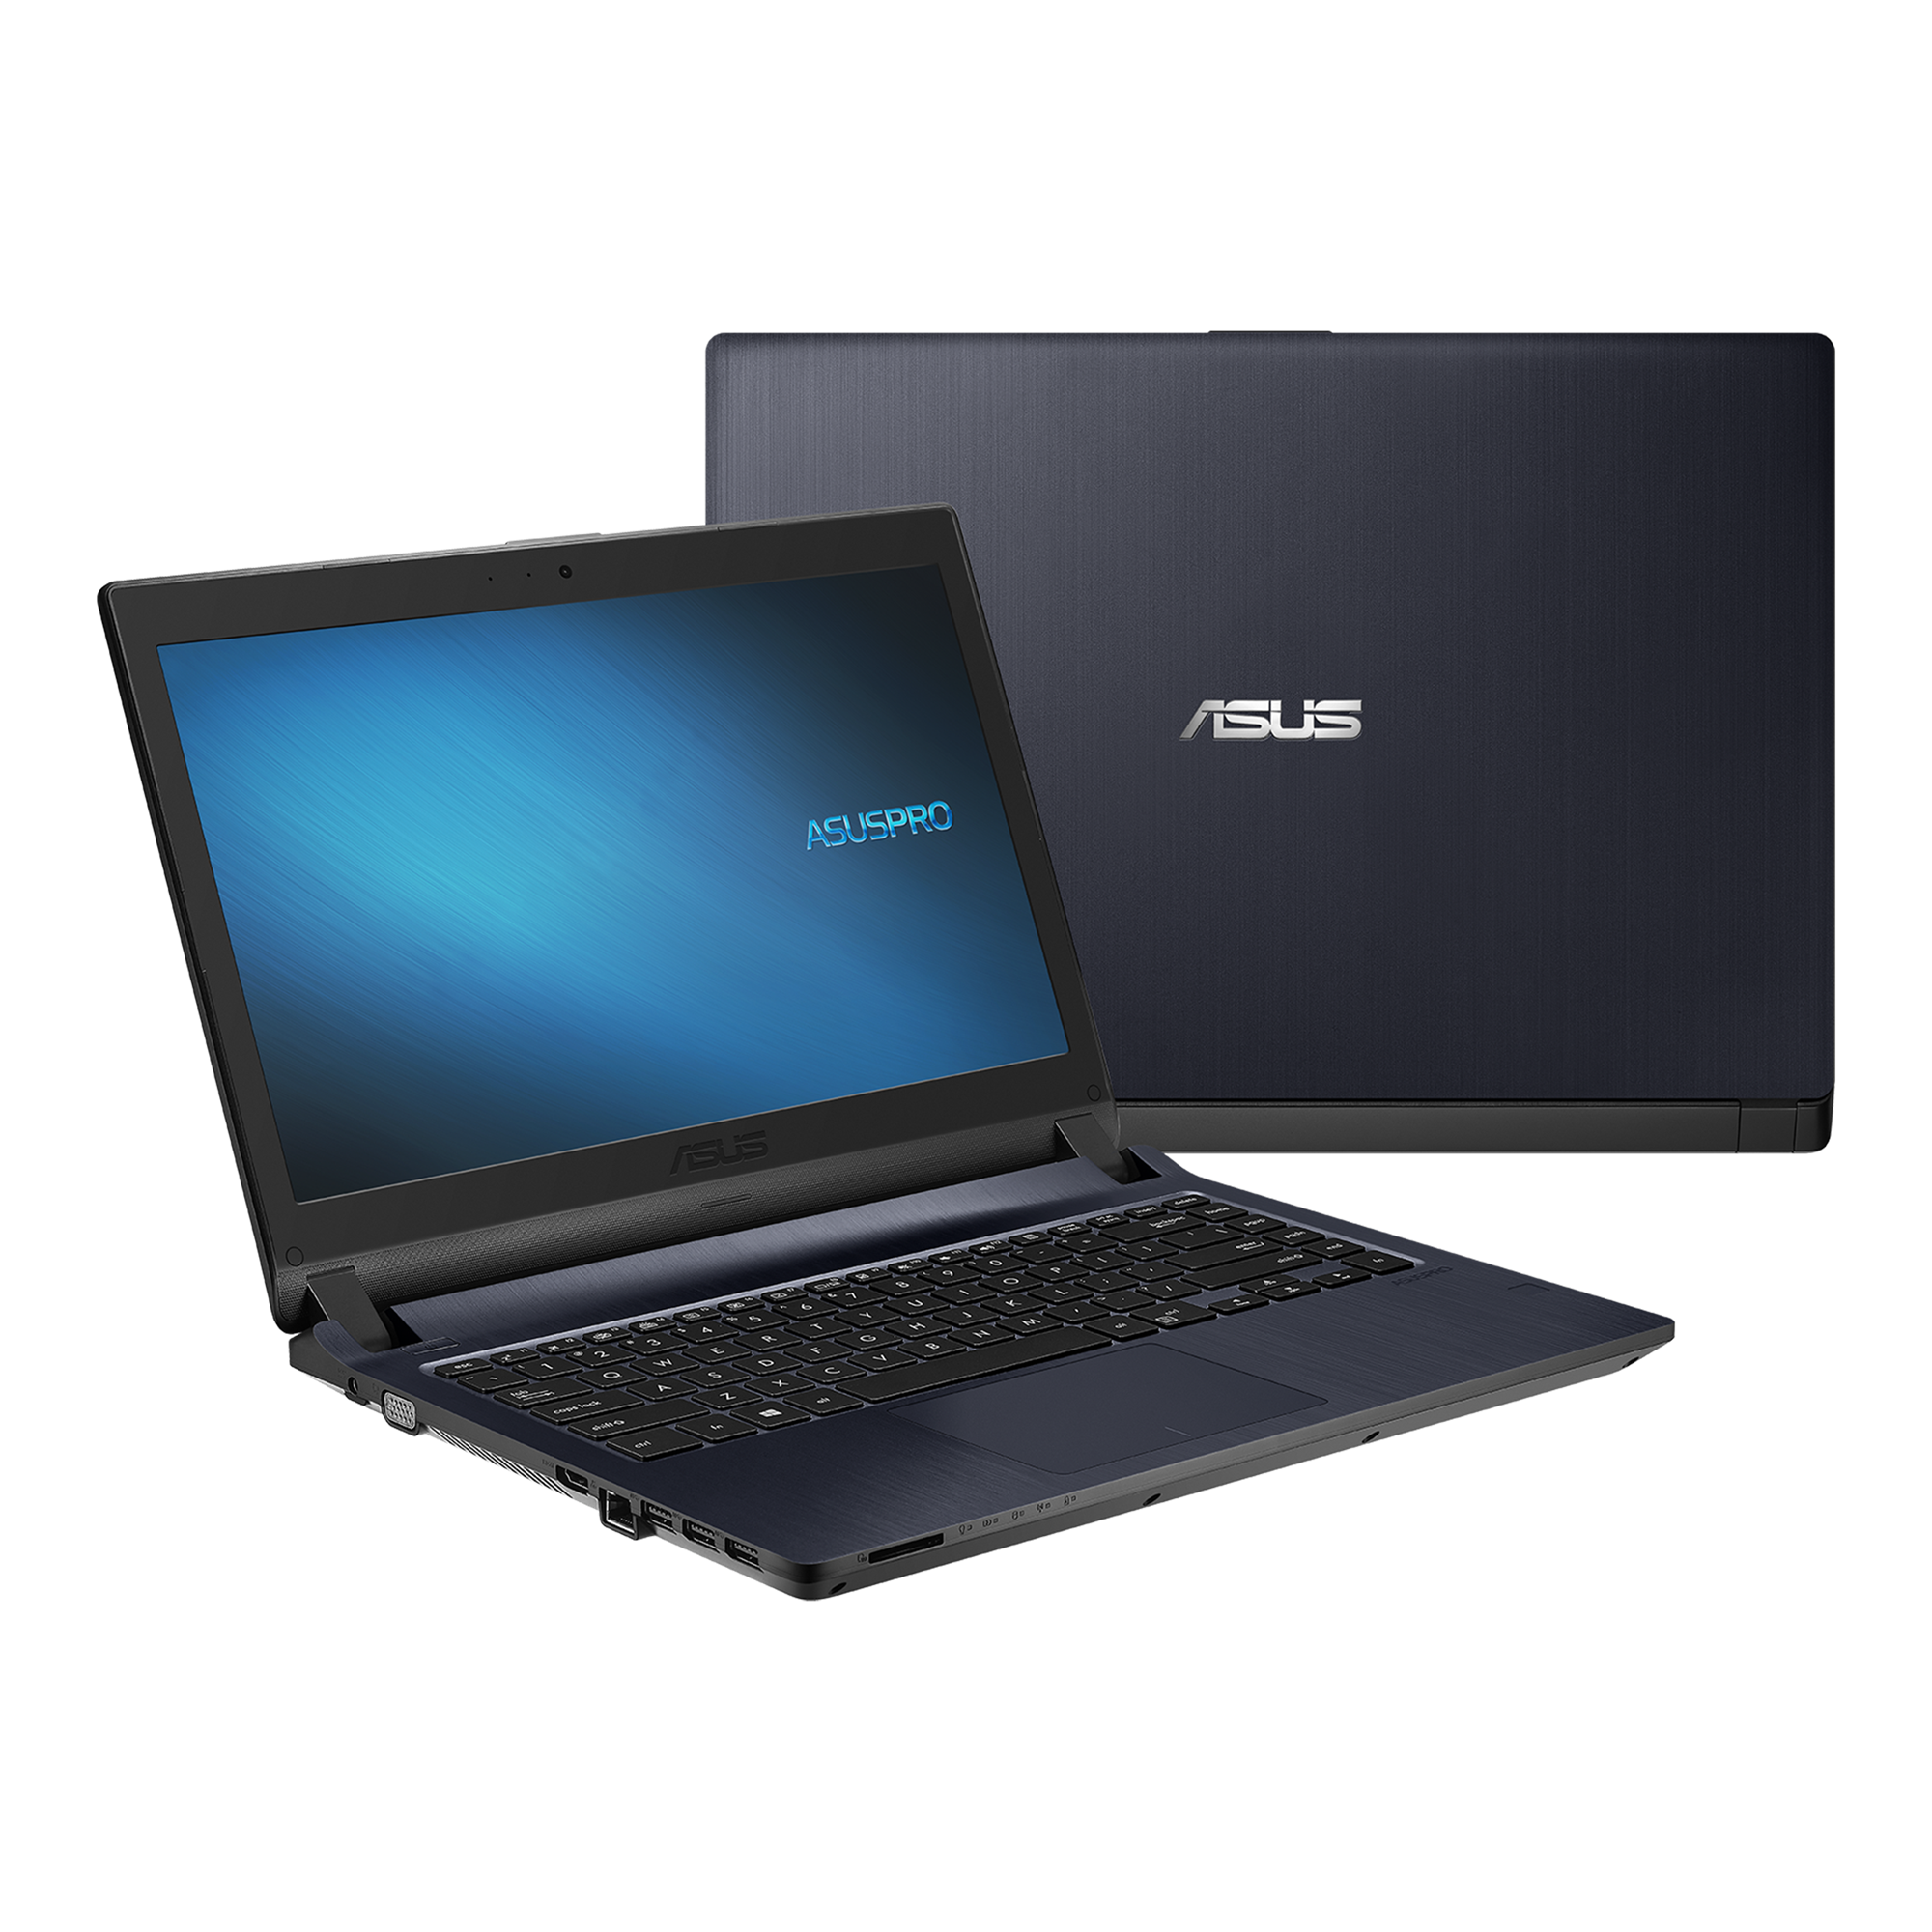 ASUS ExpertBook P1 P1440|Laptops For Work|ASUS Malaysia